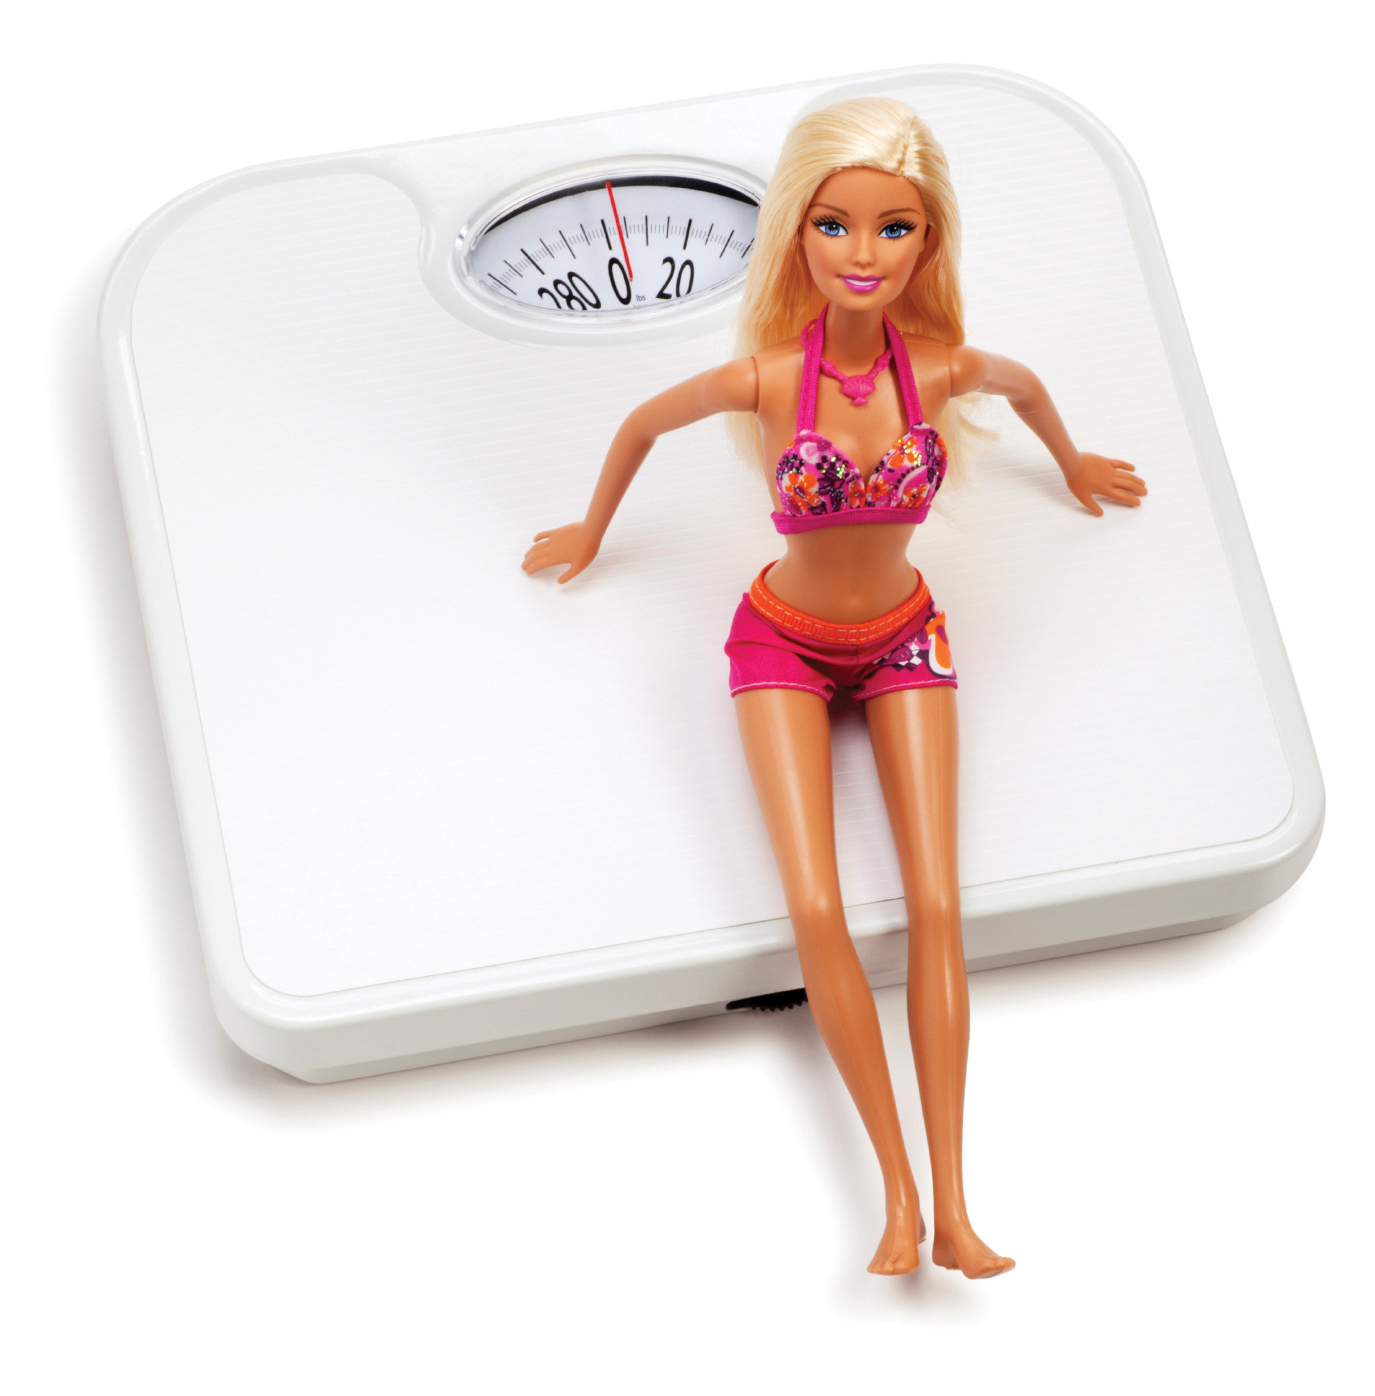 Young Female Juvenile Diabetics are Affected by Diabulimia